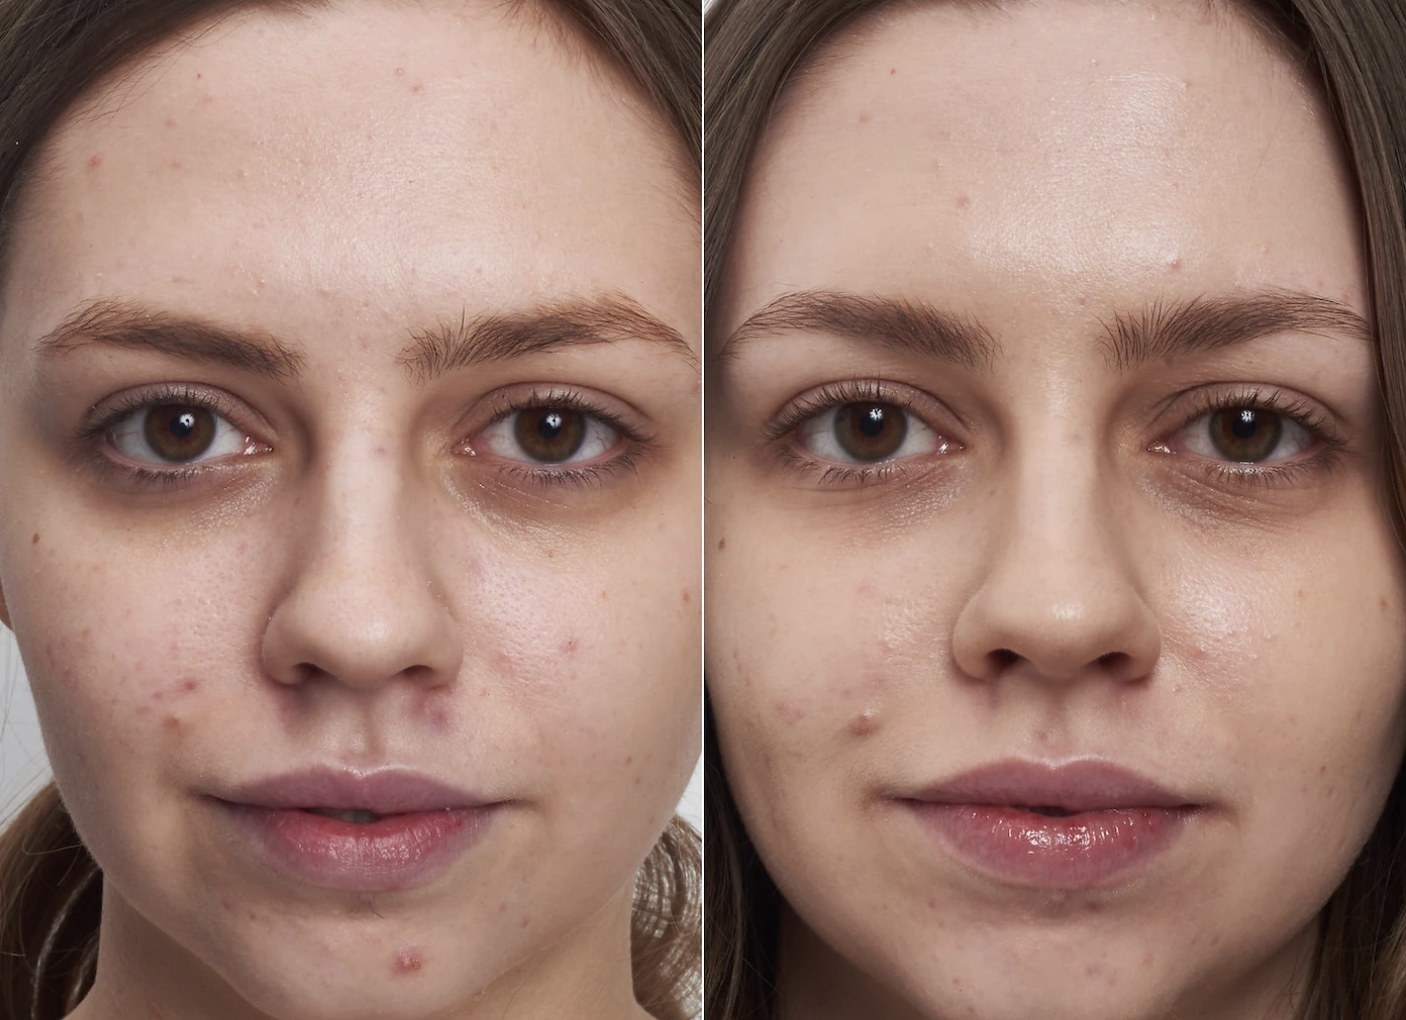 a person before and after 60 days of using the acne fighting cleanser